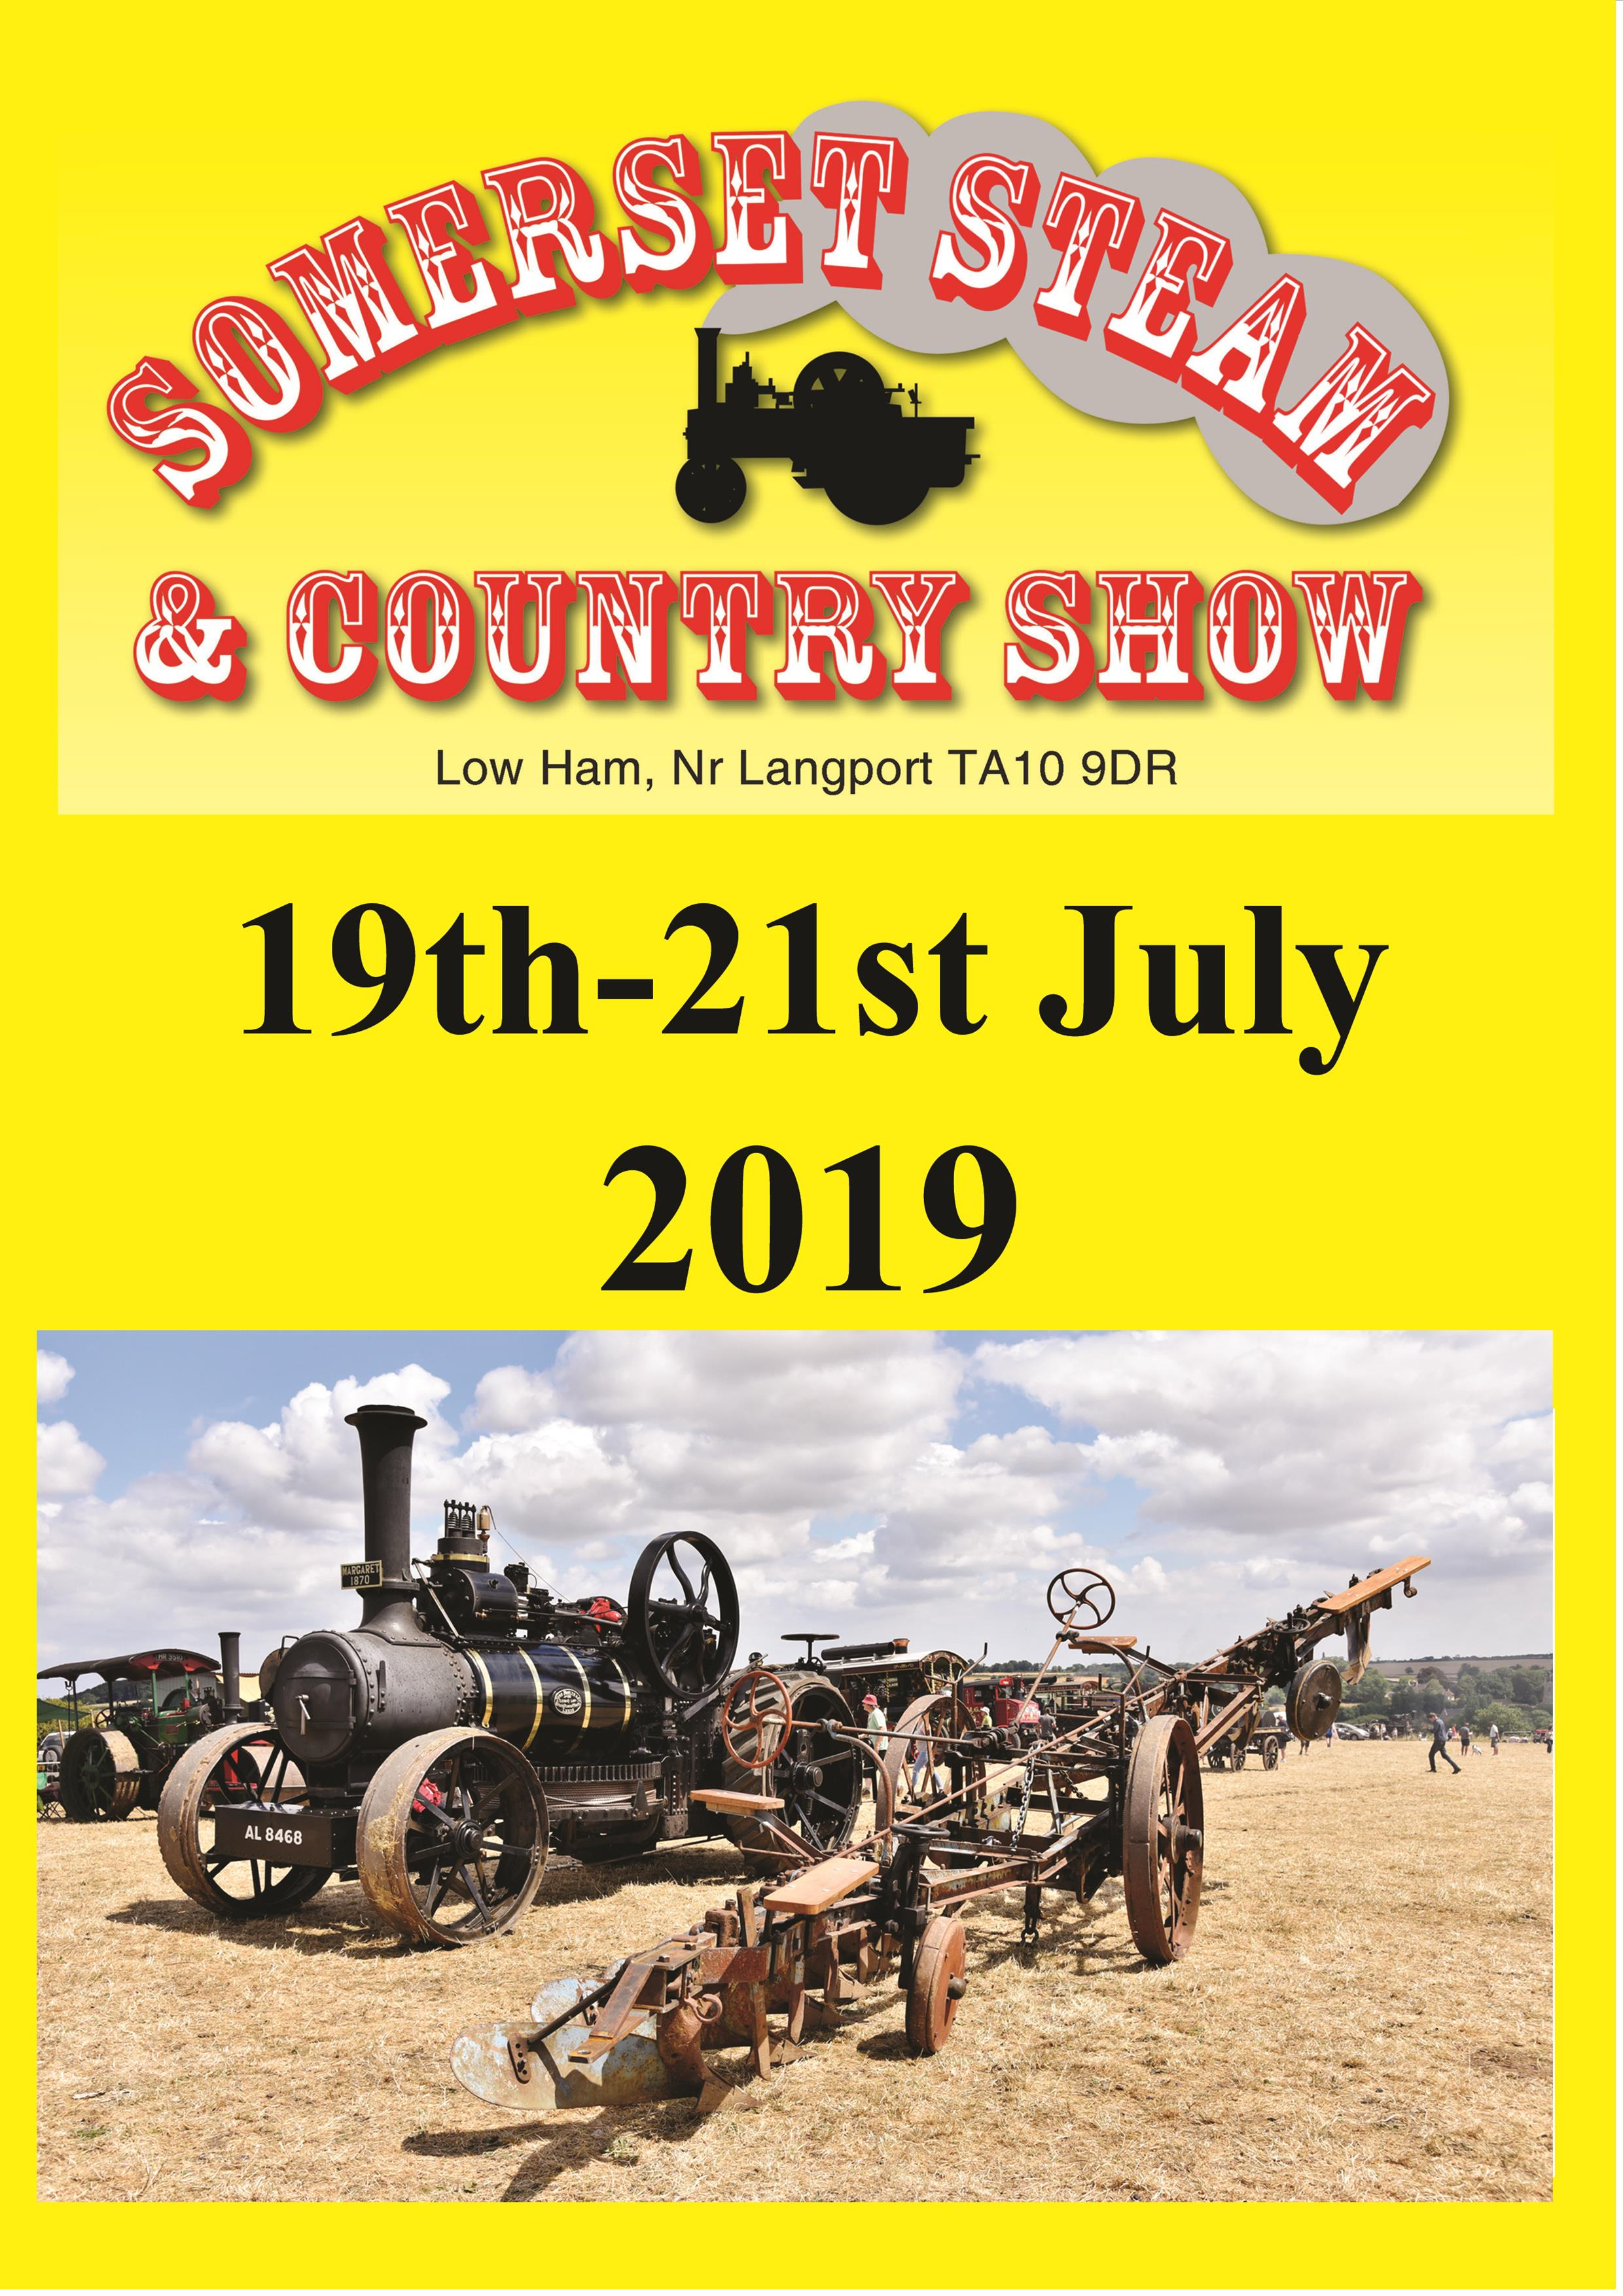 Somerset Steam & Country Show 2019